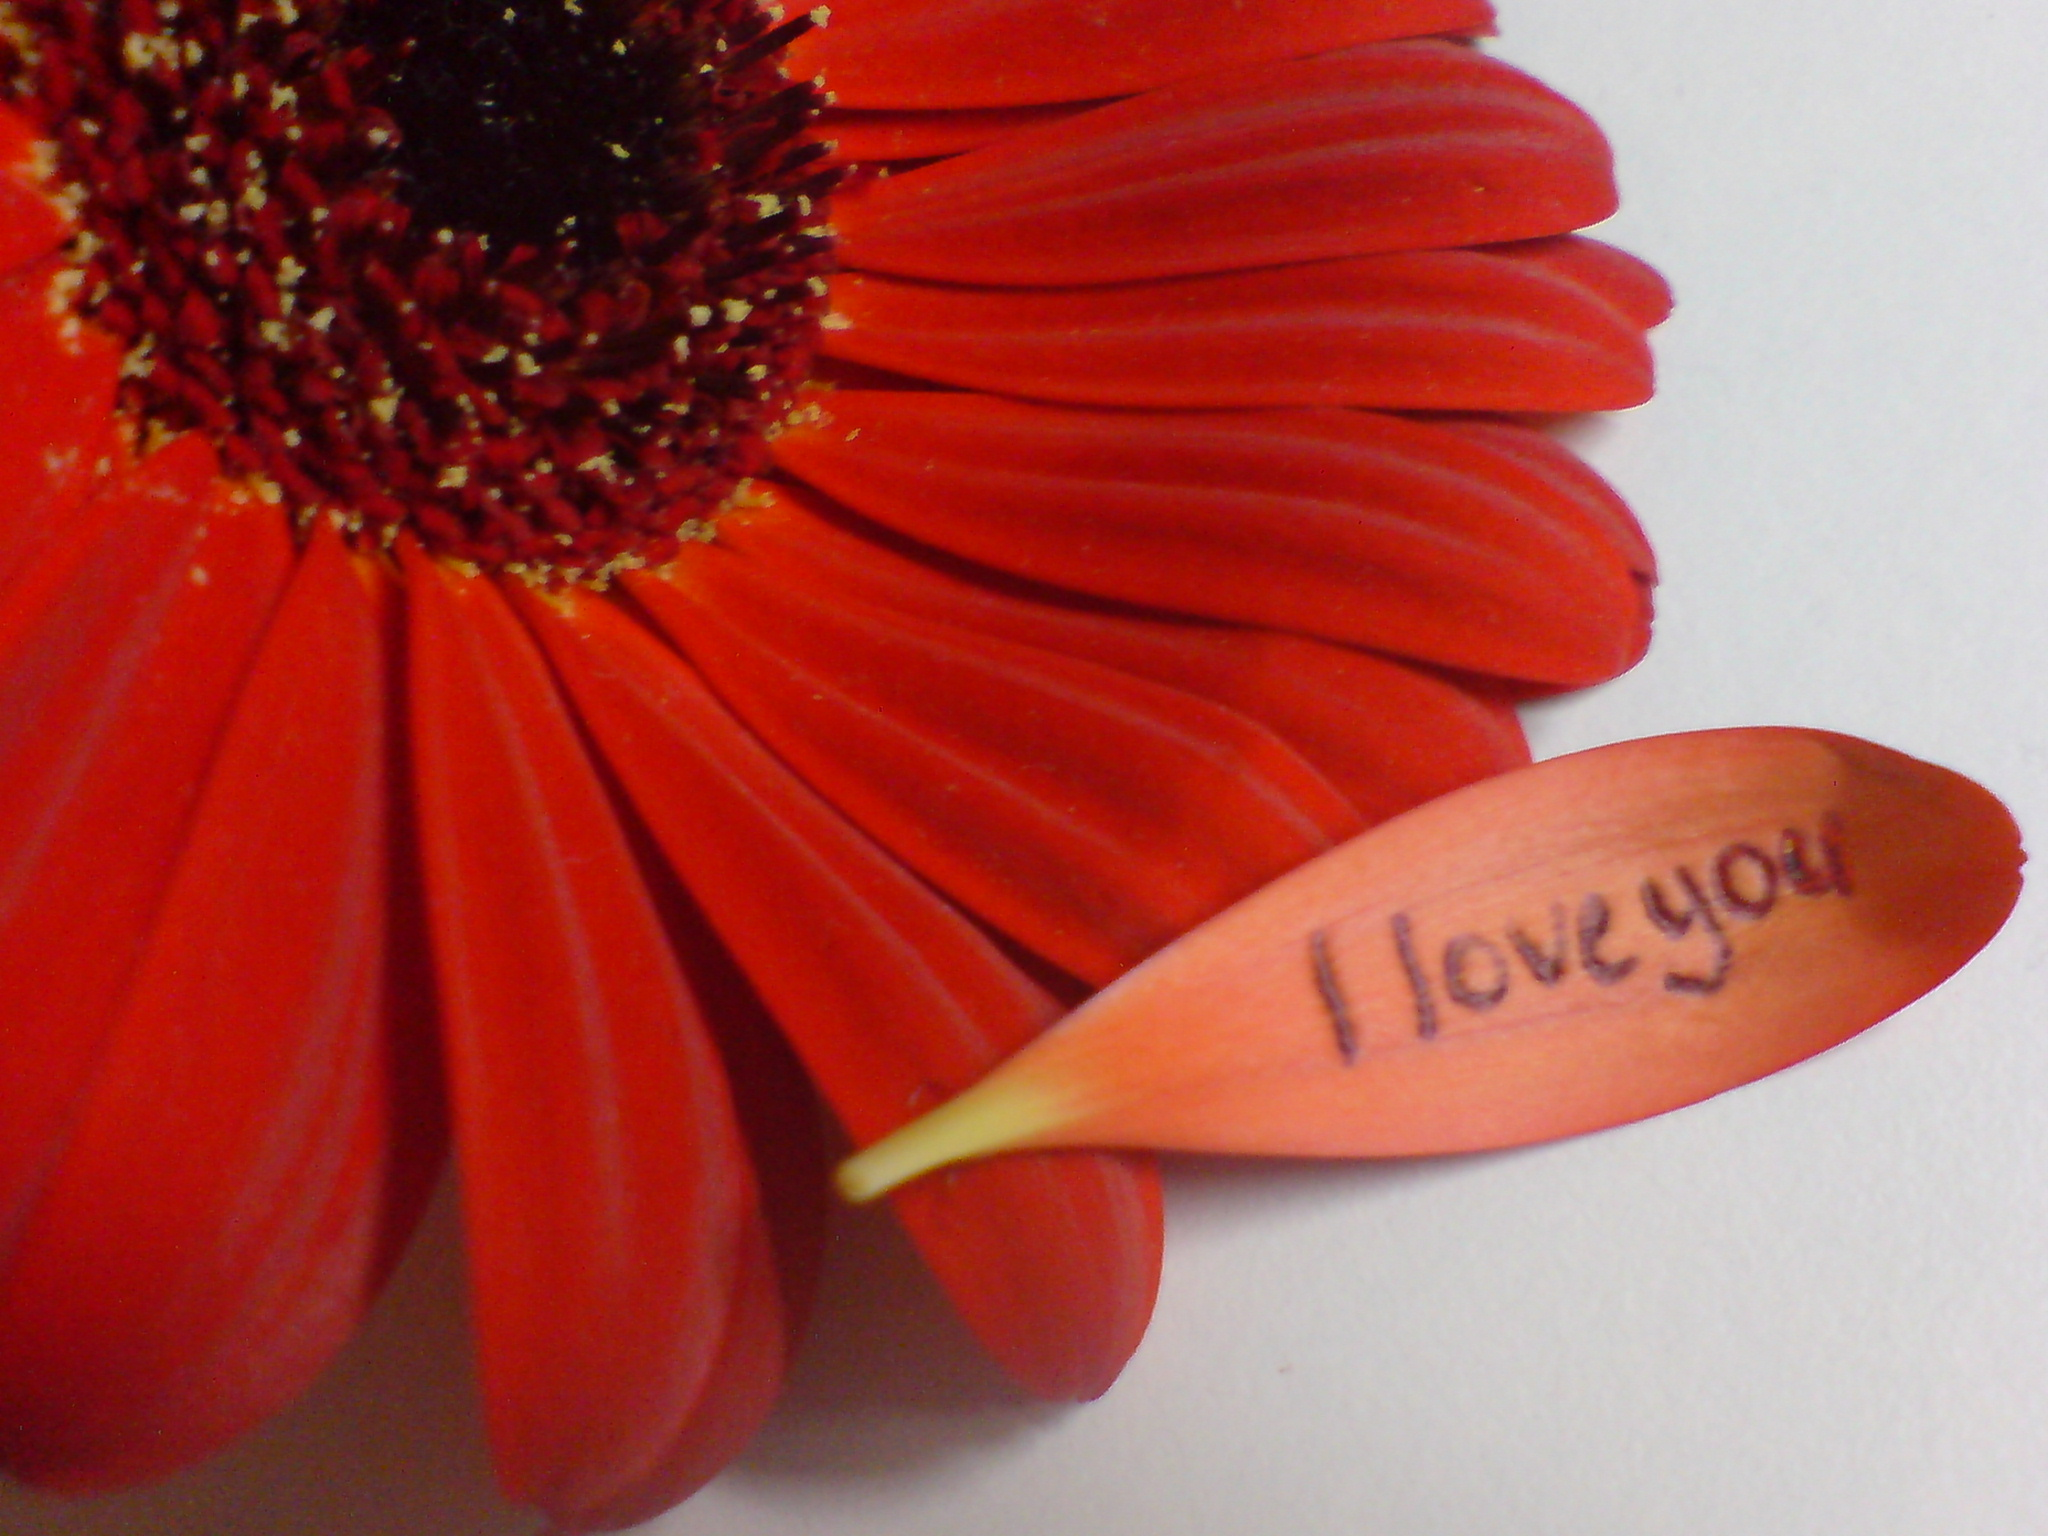 red_flower___i_love_you_by_arttwins.jpg